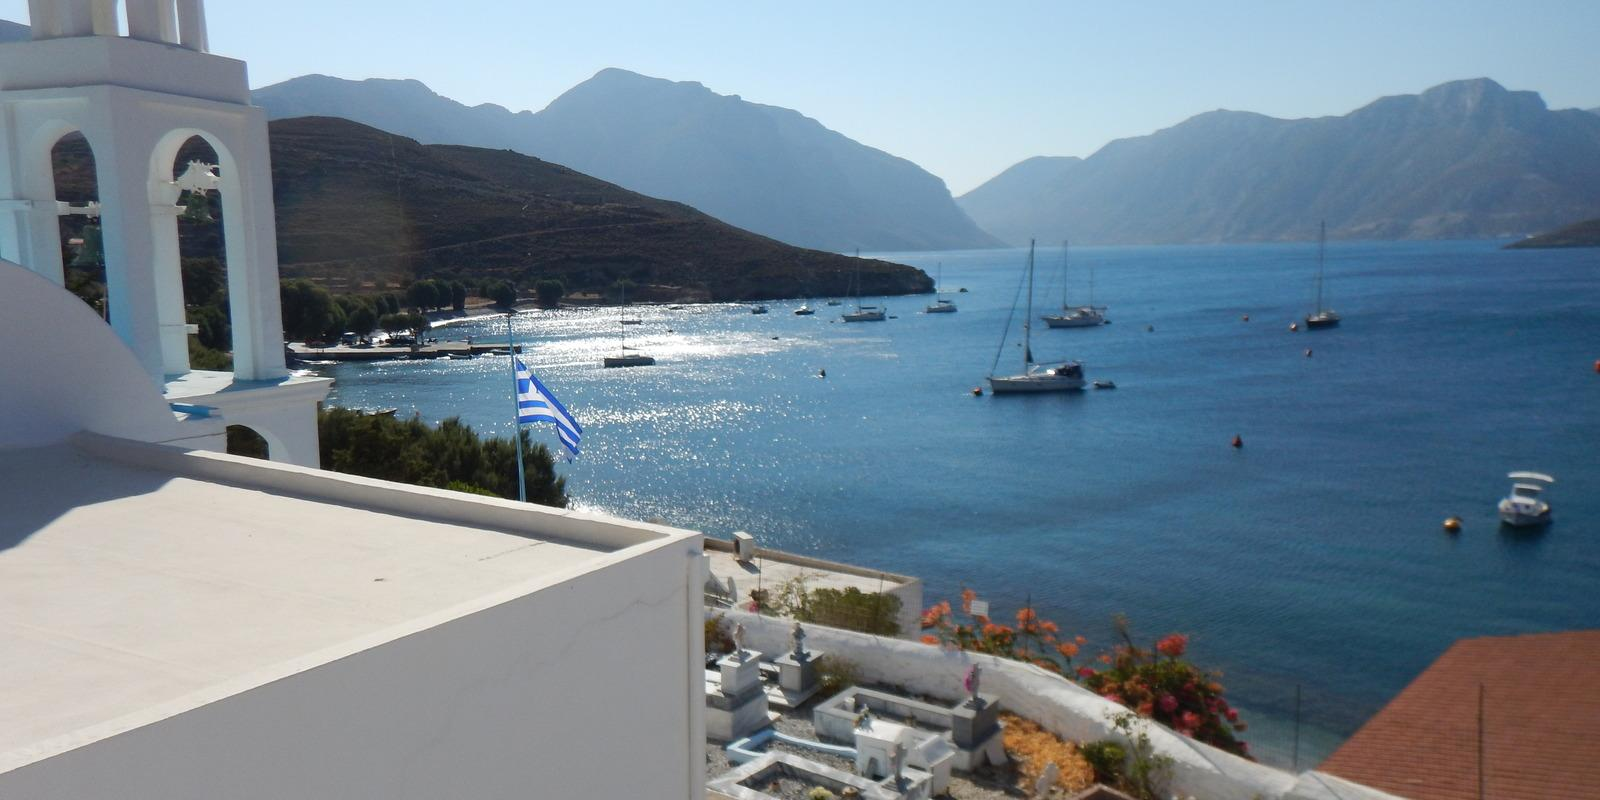 Kos - Kalimnos - Lipsi - Patmos - Leros. Dream week between sailing, sea and (if desired) free c